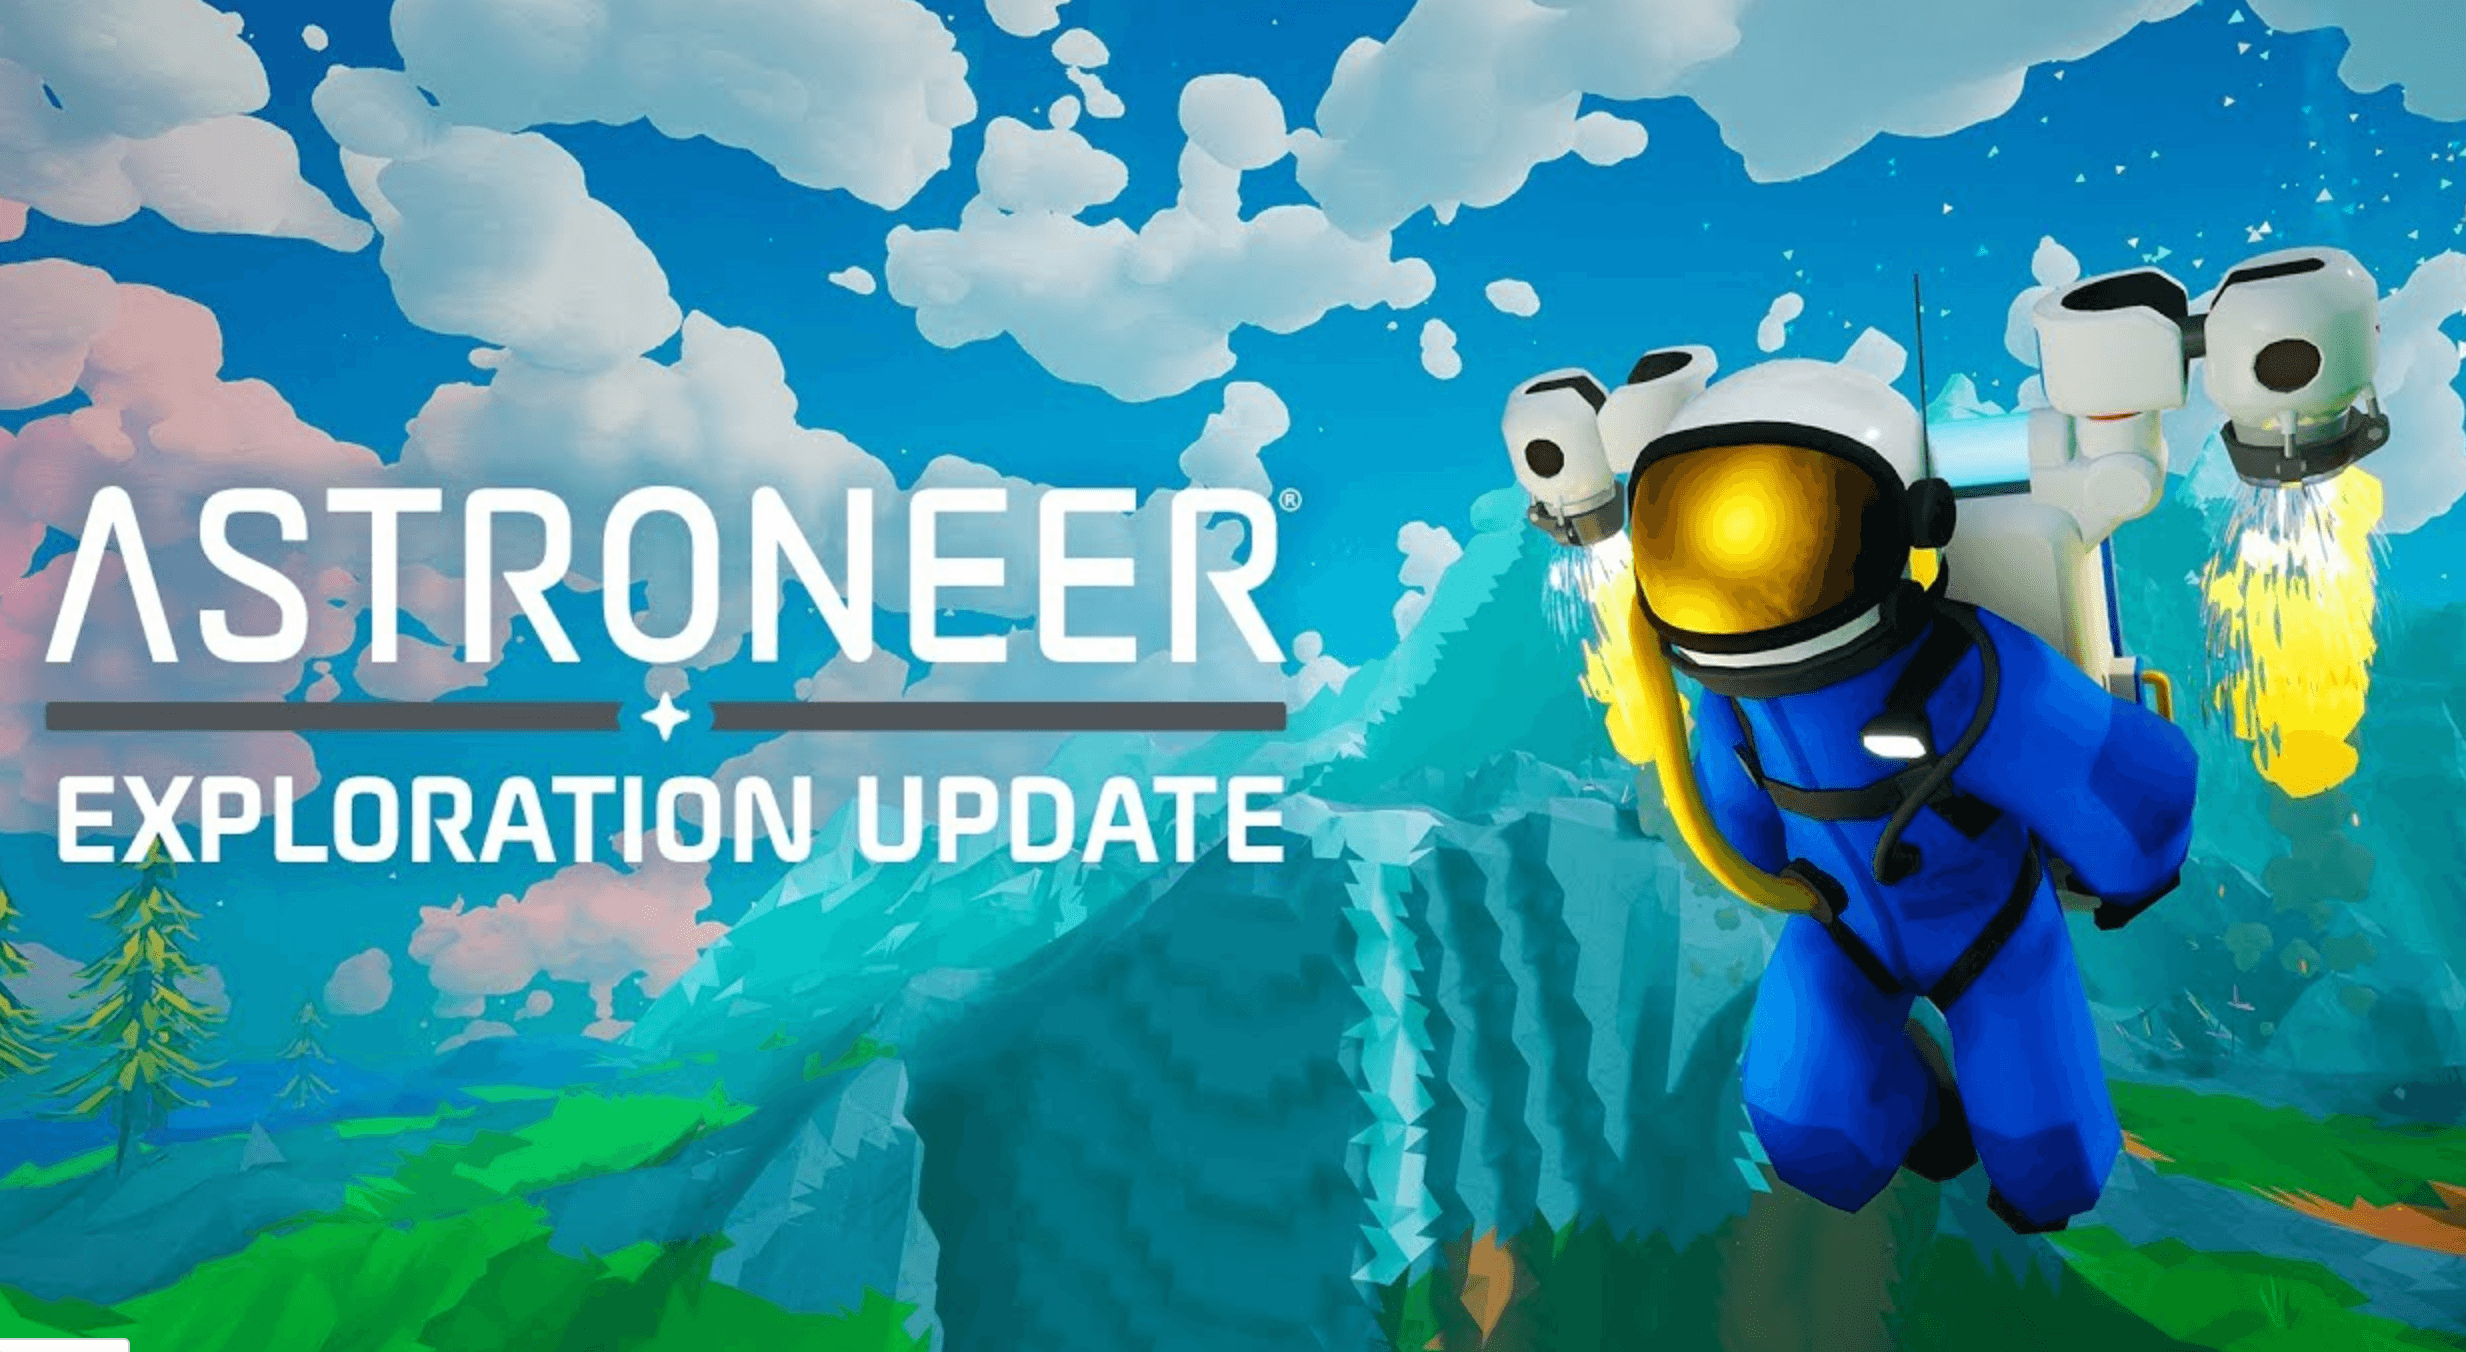 astroneer cover photo